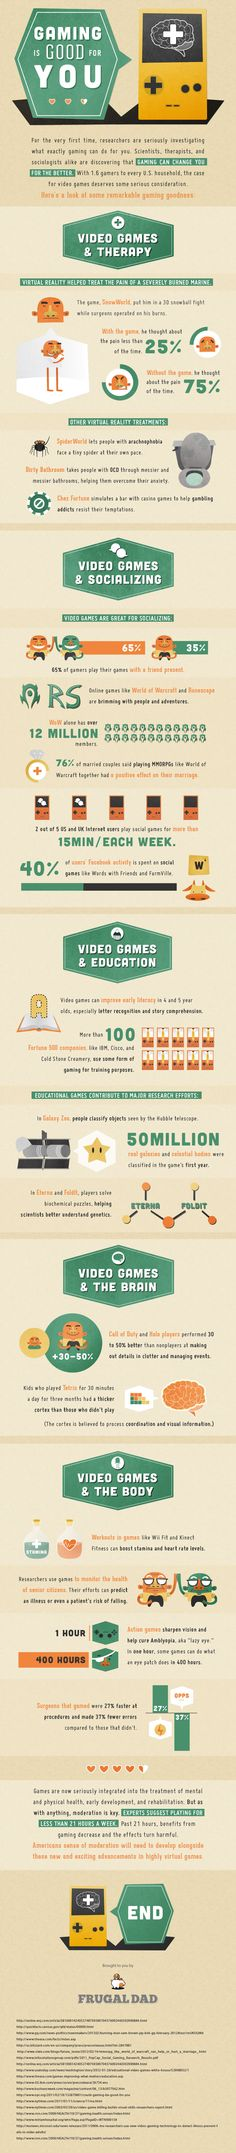 Japanese Ghost presents... Gaming is Good for You Infographic